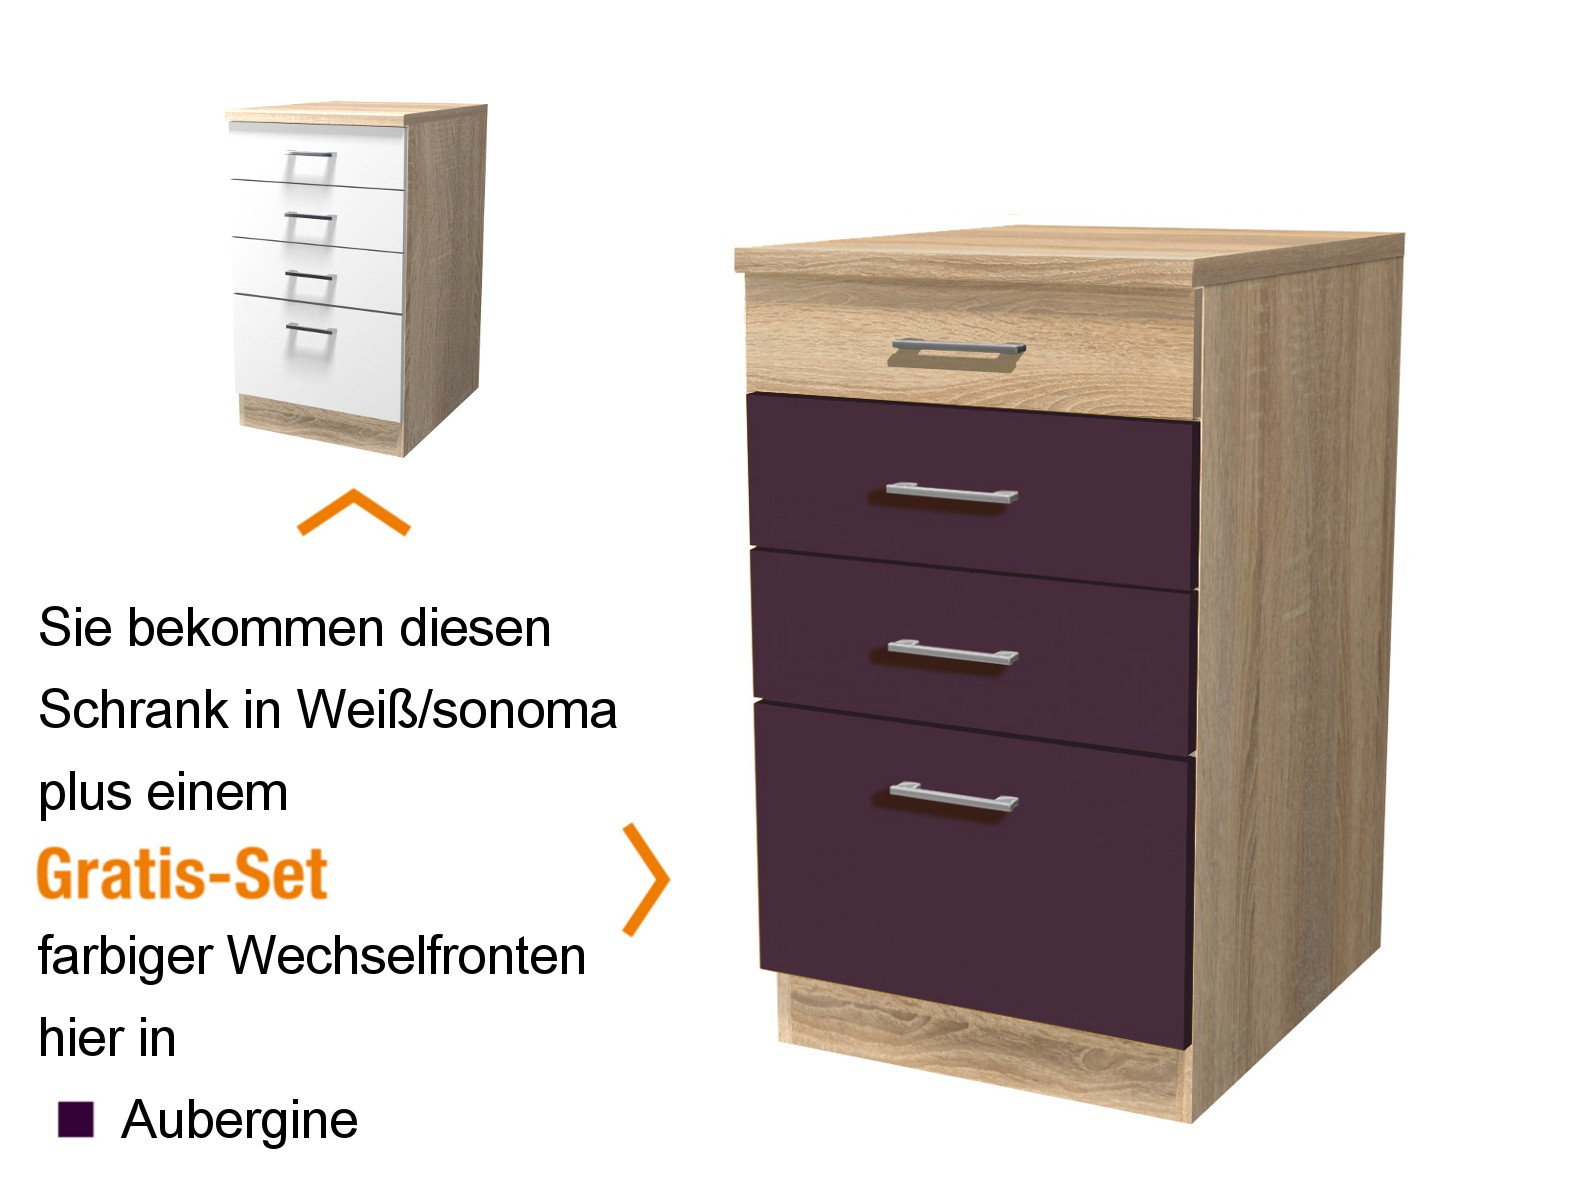 k chen unterschrank rom k chenschrank mit schubladen 50cm aubergine sonoma weiss ebay. Black Bedroom Furniture Sets. Home Design Ideas